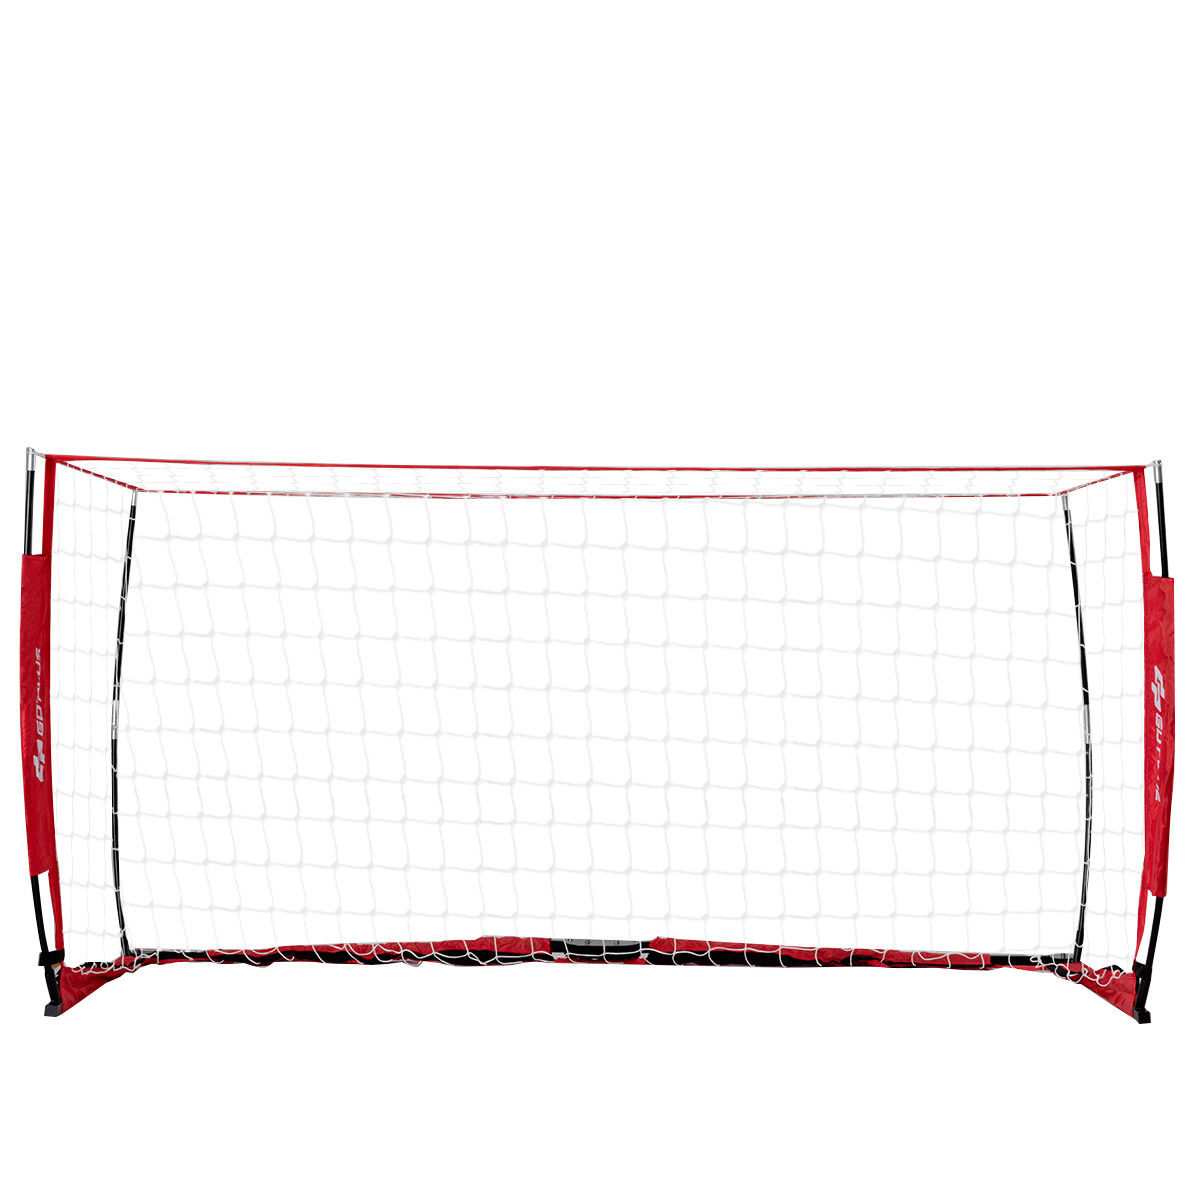 Costway 8' x 4' Soccer Goal Durable Bow Style Net Quick Setup Soccer Training w/ Bag